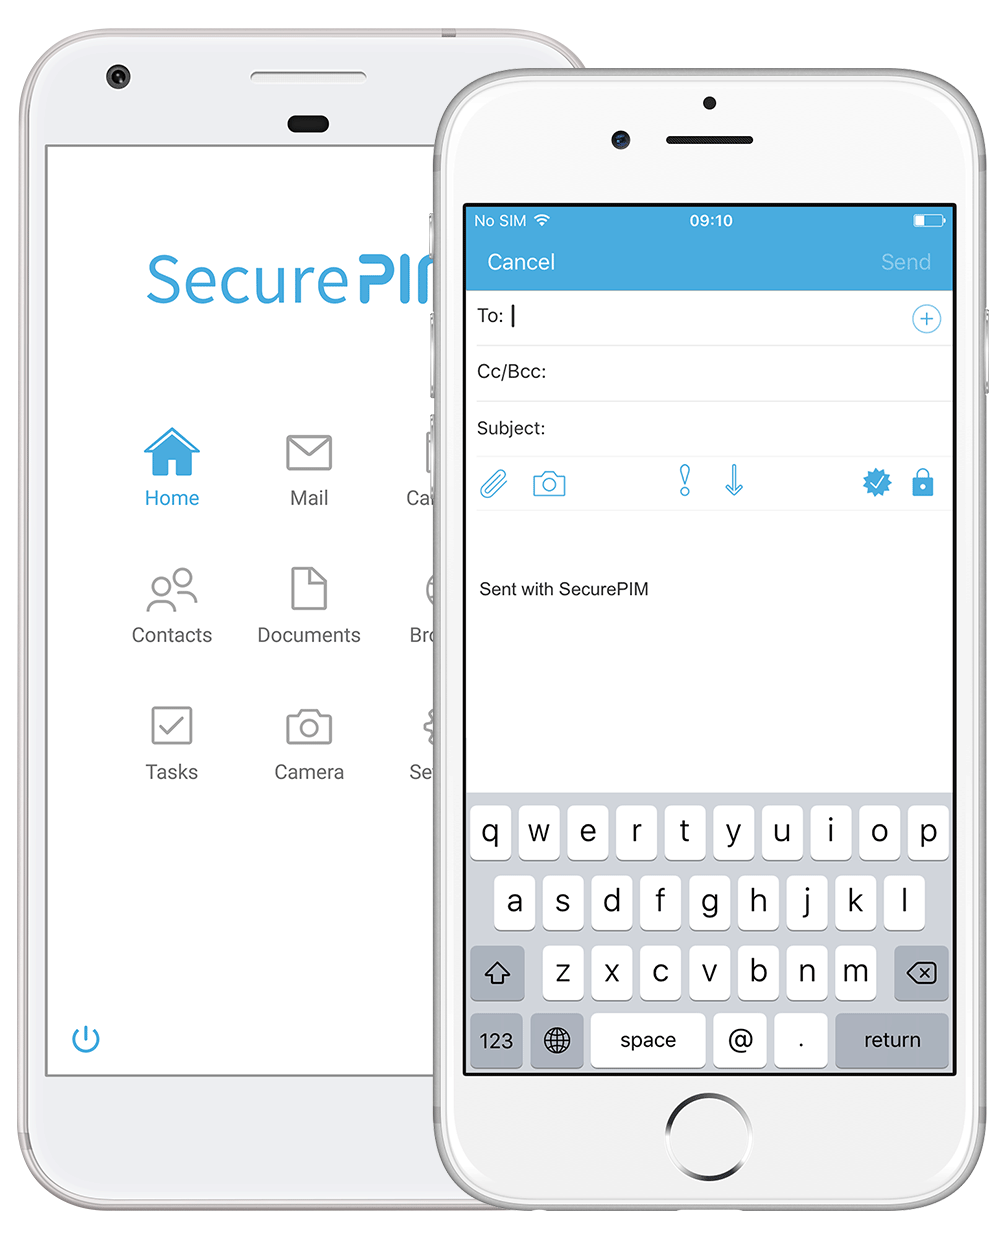 SecurePIM Mail Module email composer and central Workspace